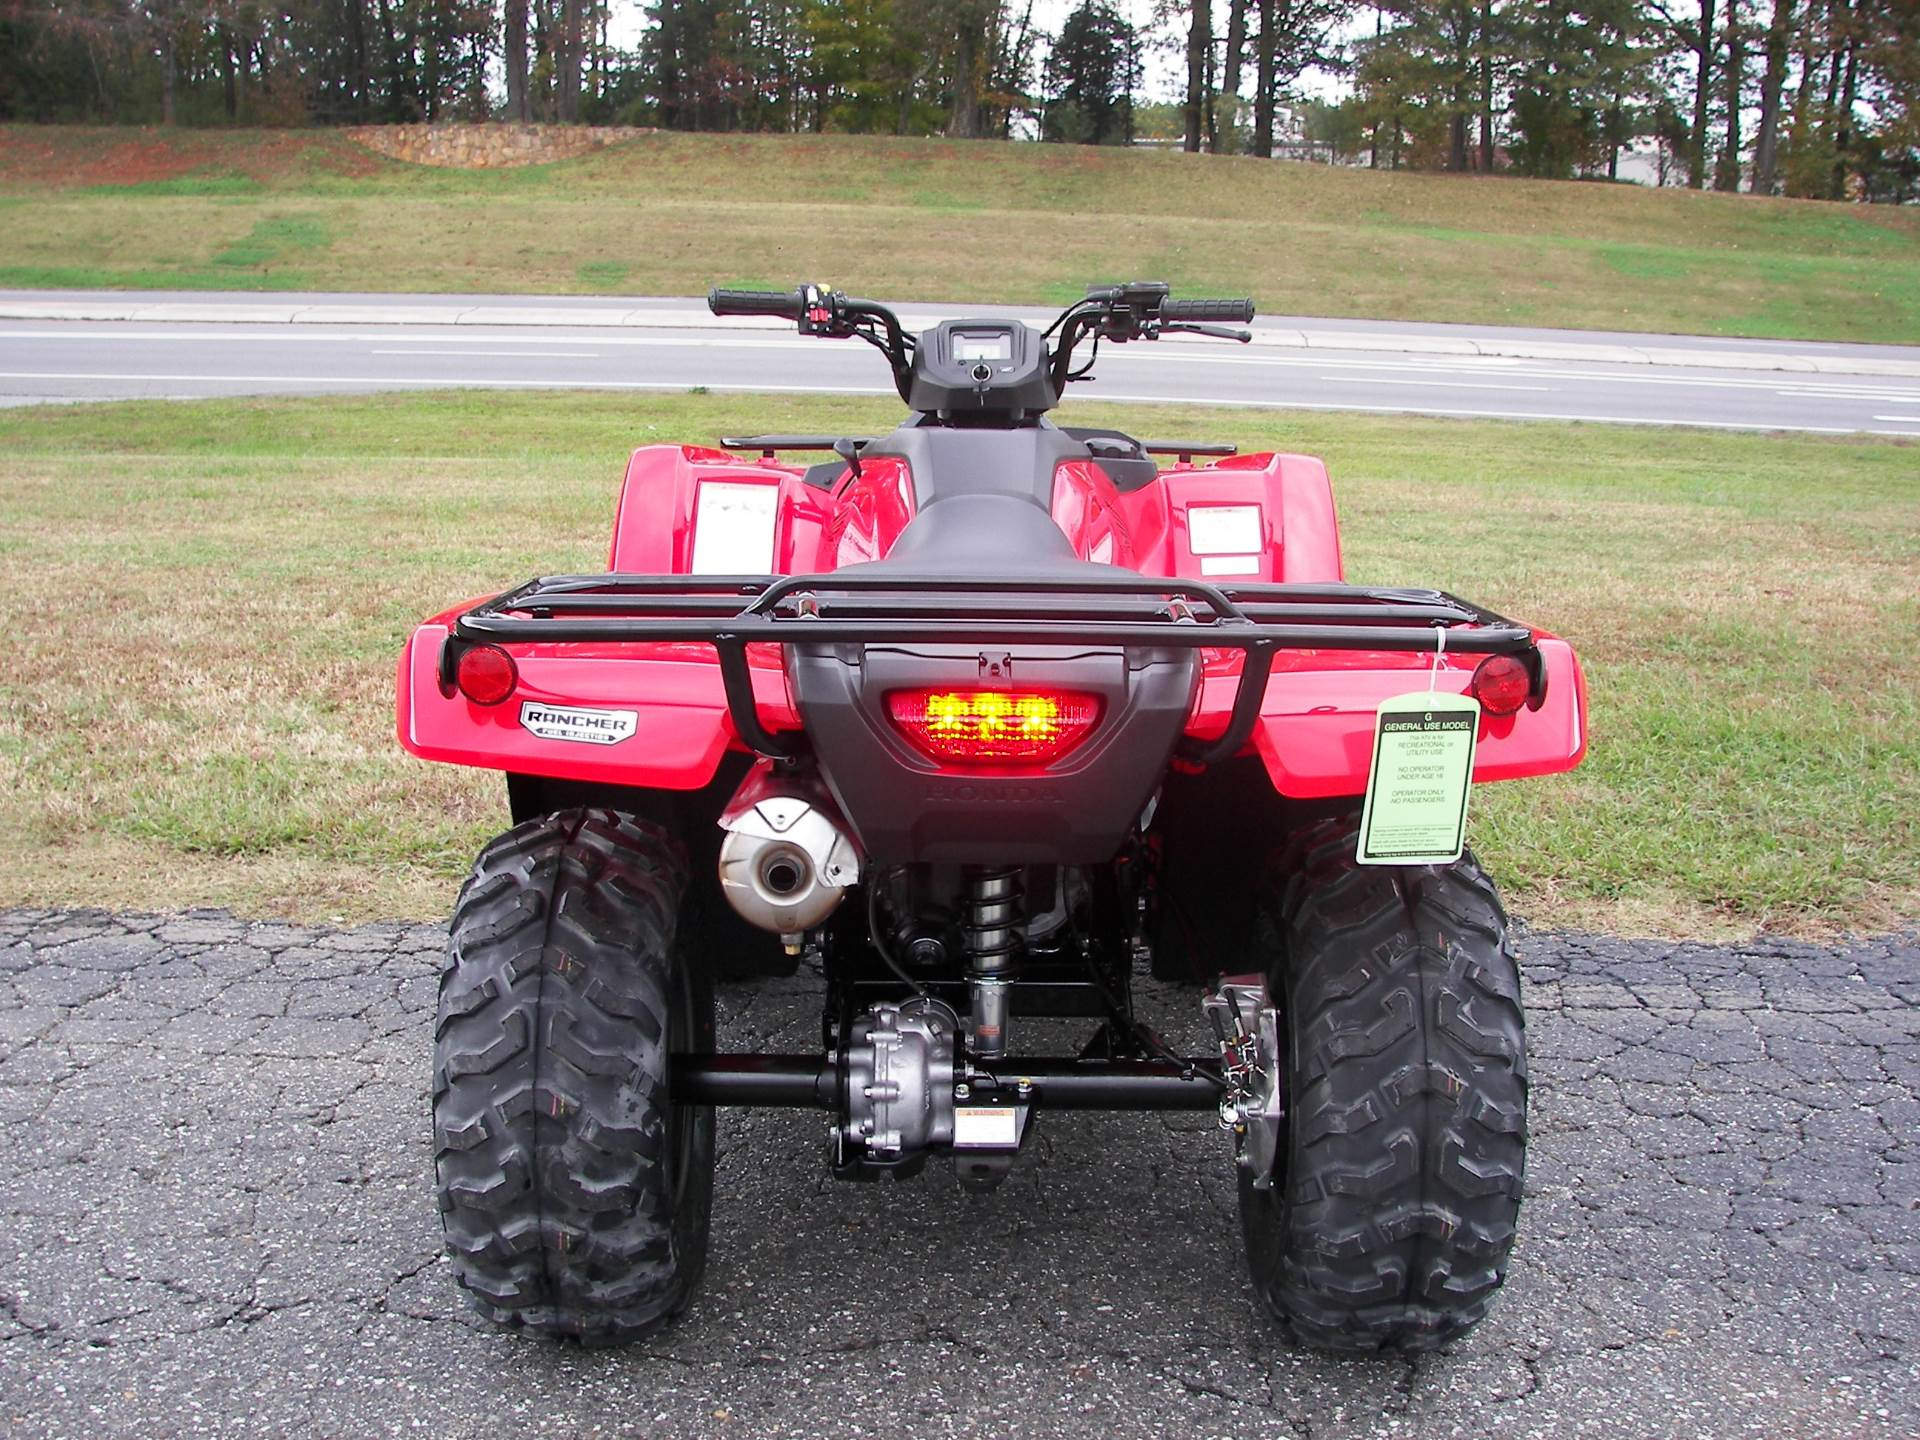 2019 Honda FourTrax Rancher 4x4 in Shelby, North Carolina - Photo 6